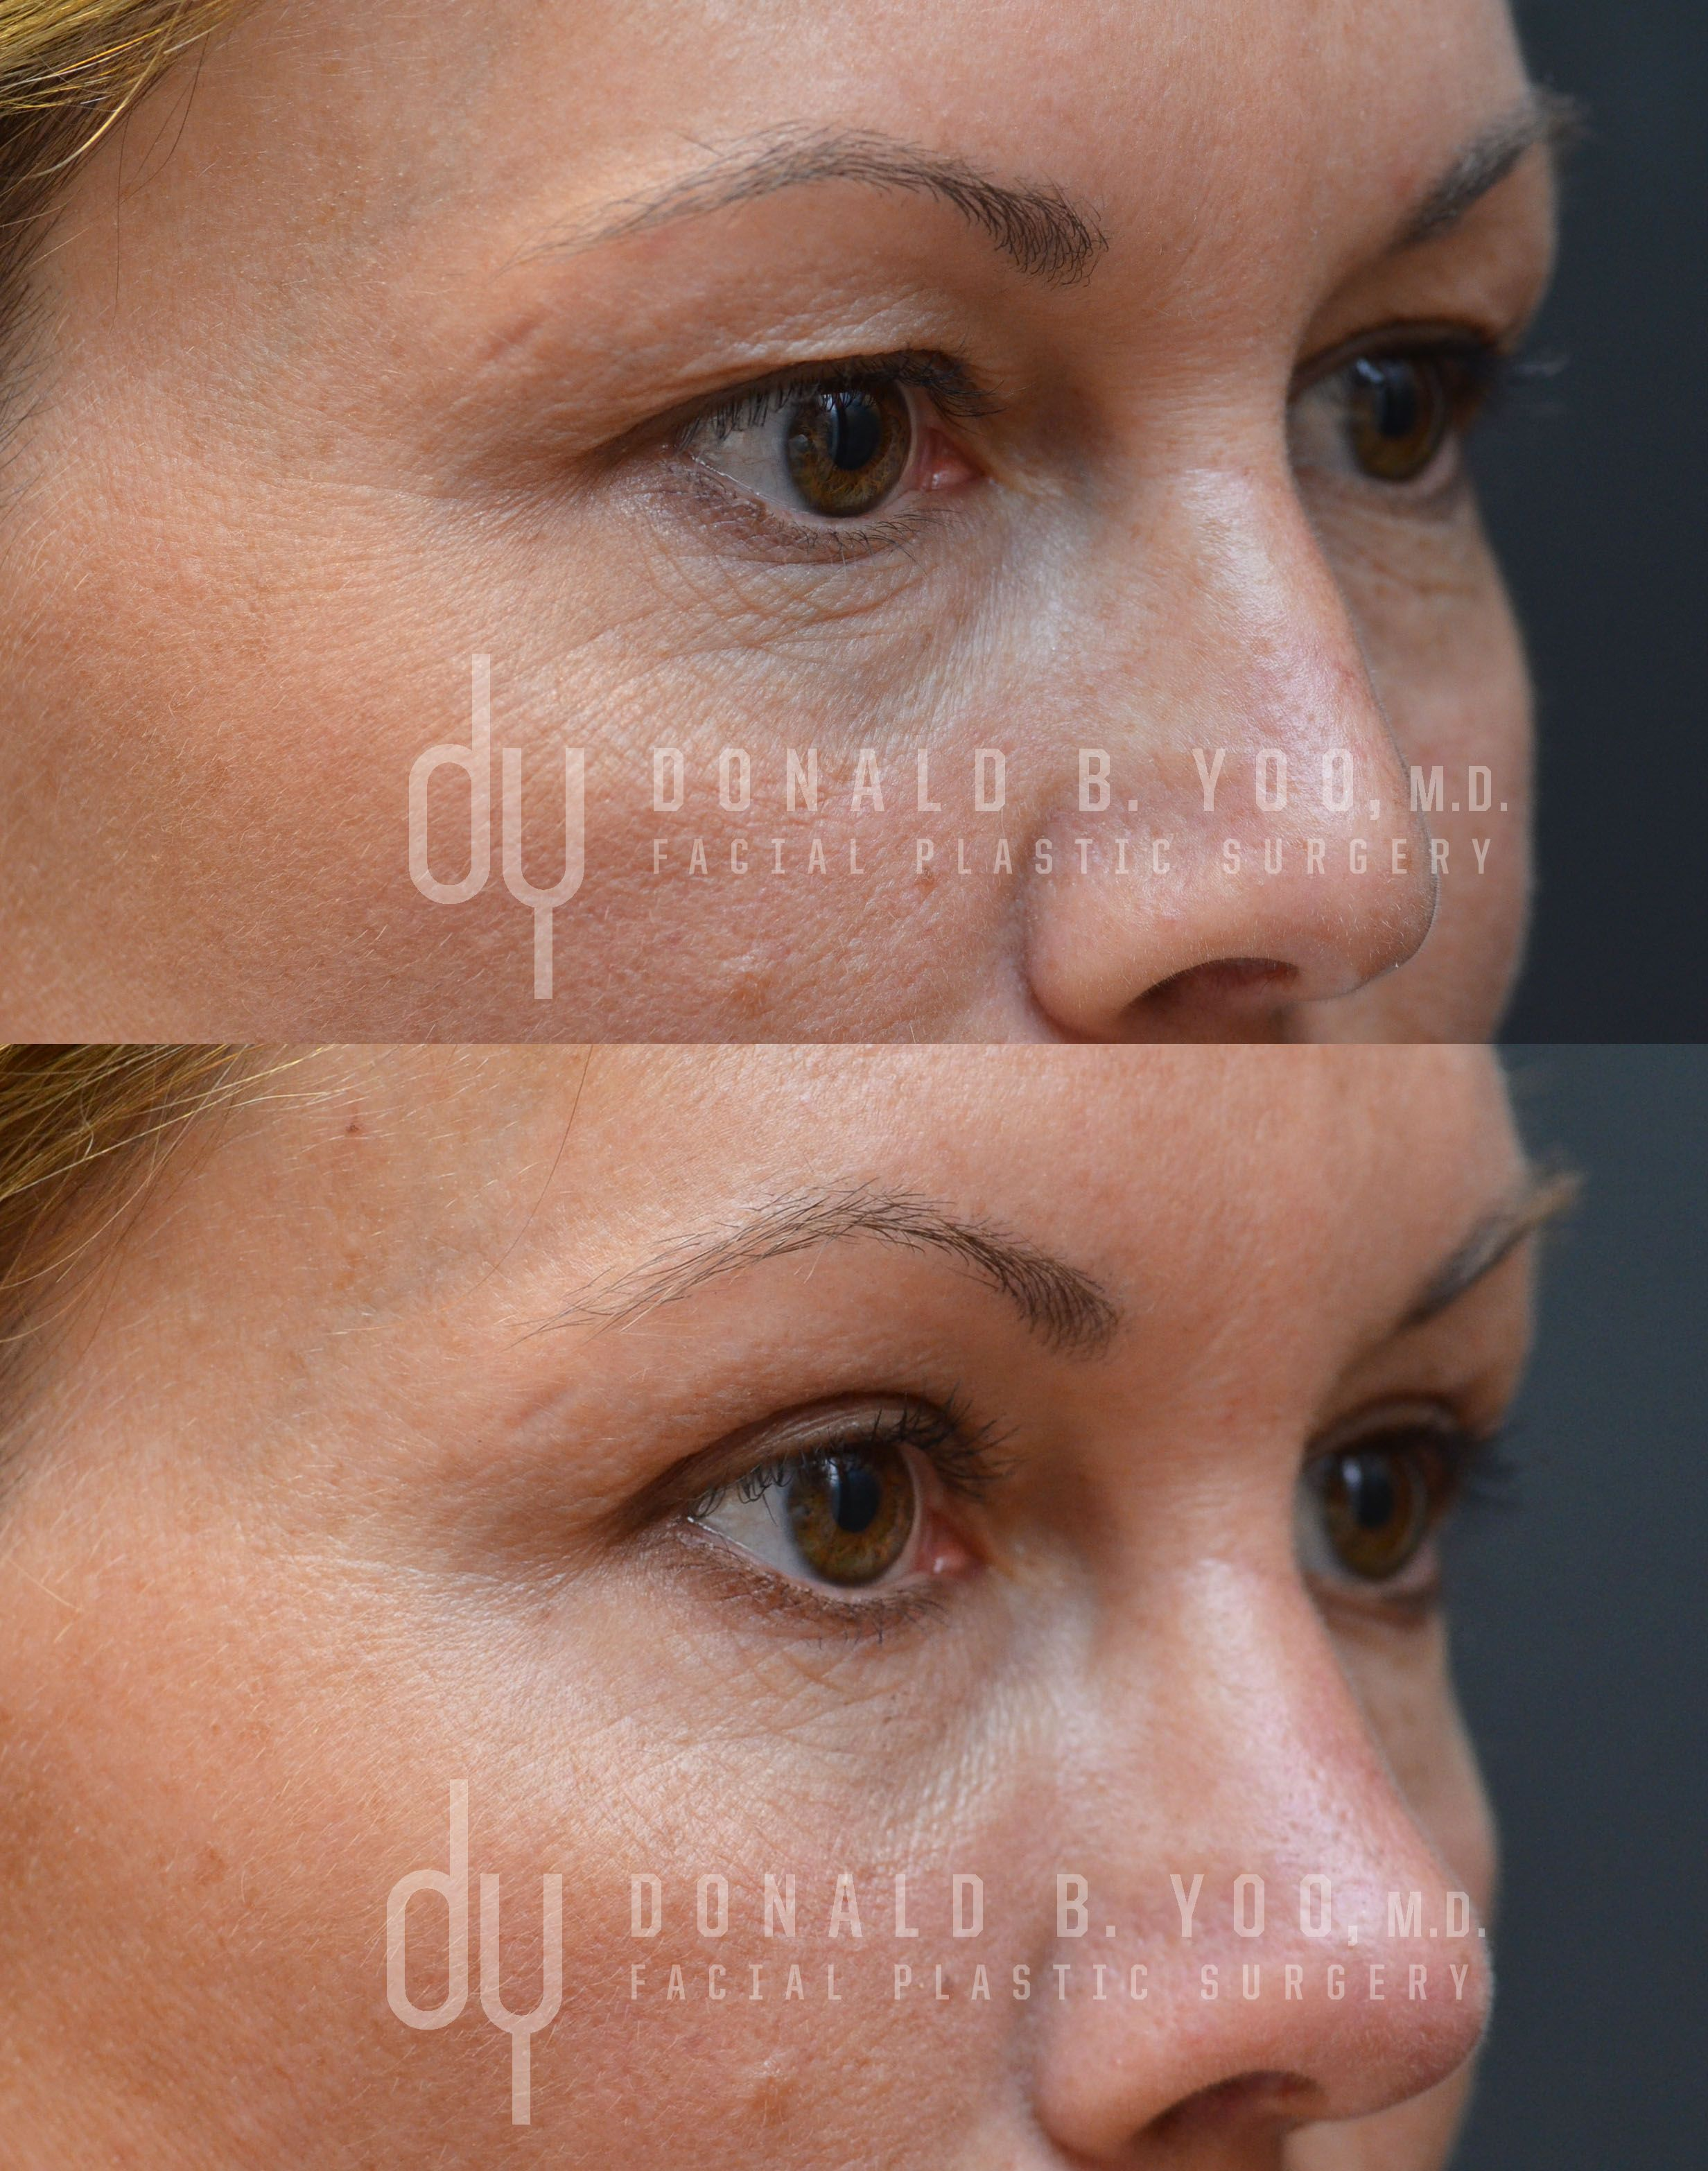 ... removed and the upper eyelids contoured to create greater symmetry and  a more refreshed appearance. #blepharoplasty #plasticsurgery #drdonyoo